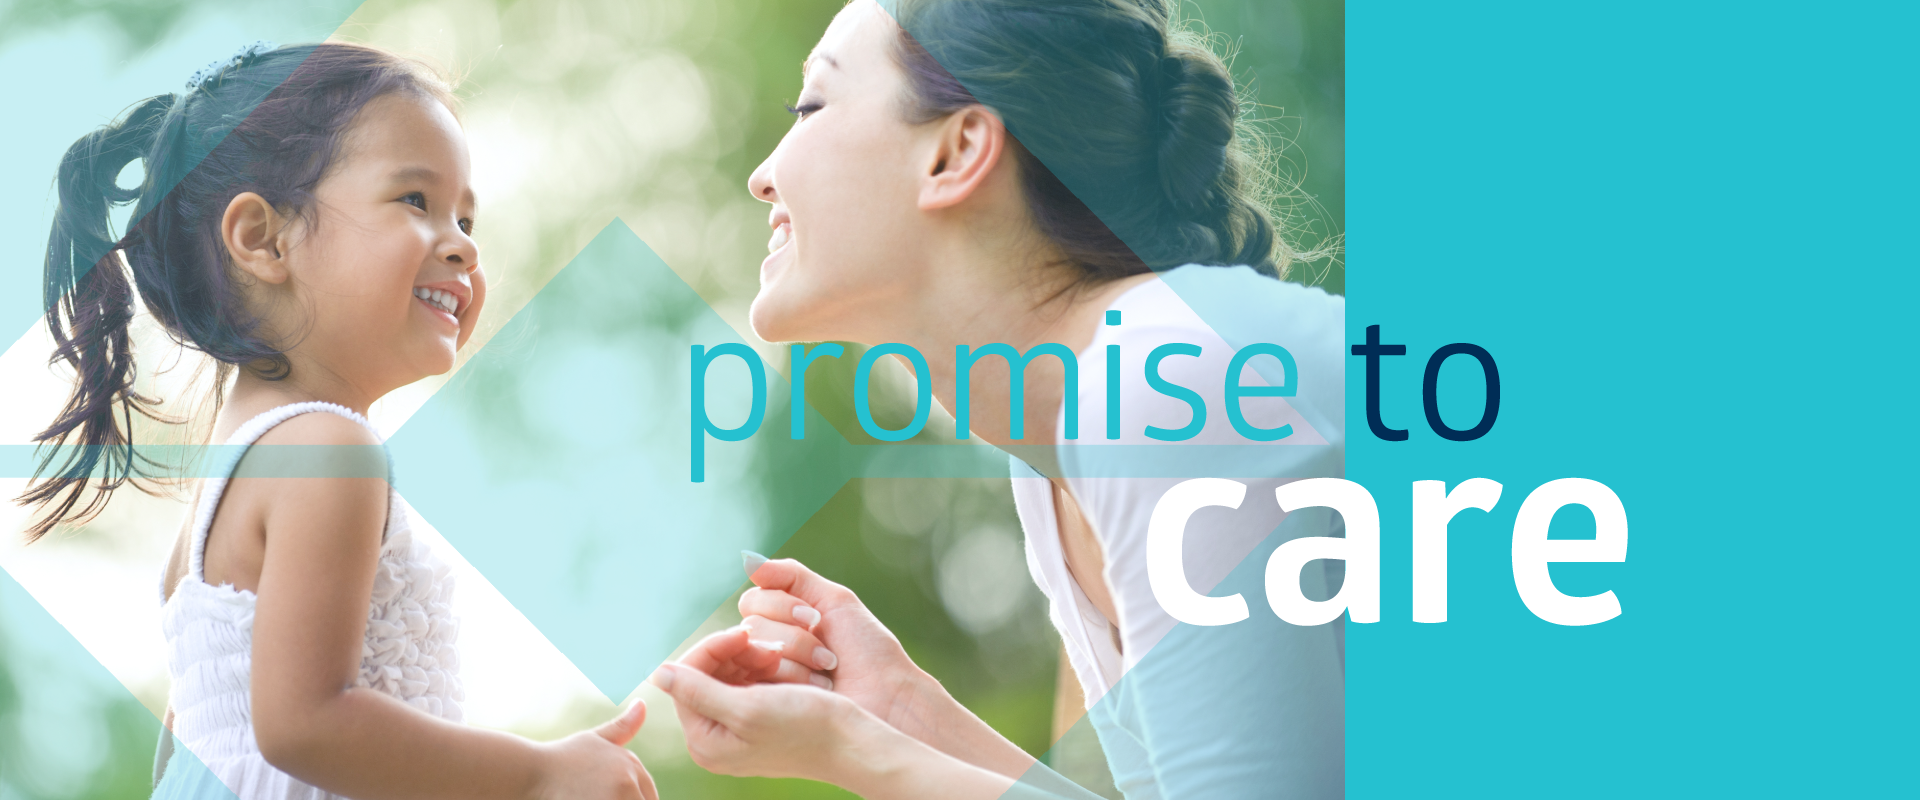 promise_to_care